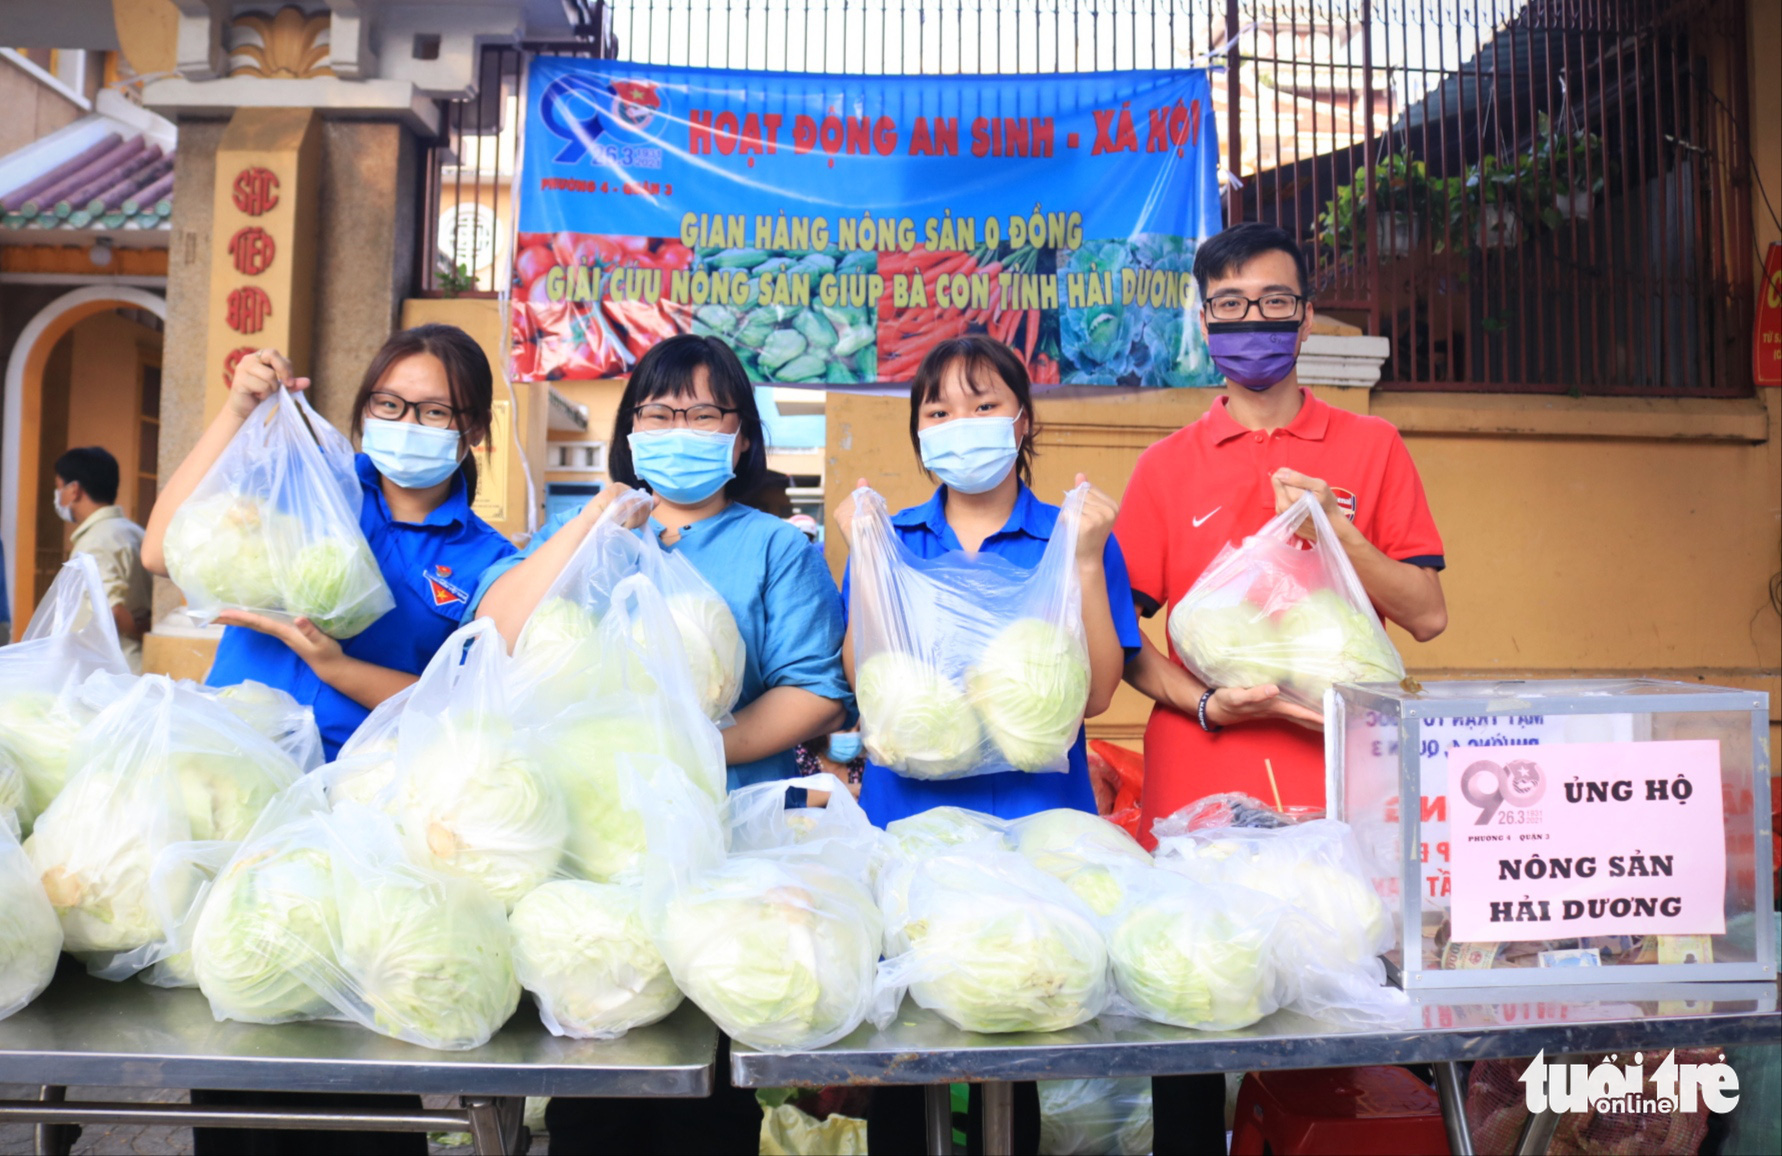 A makeshift stall of cabbages rescued from northern Hai Duong Province is set up in front of Phat Buu Pagoda in District 3, Ho Chi Minh City, February 23, 2021. Photo: Nhat Thinh / Tuoi Tre